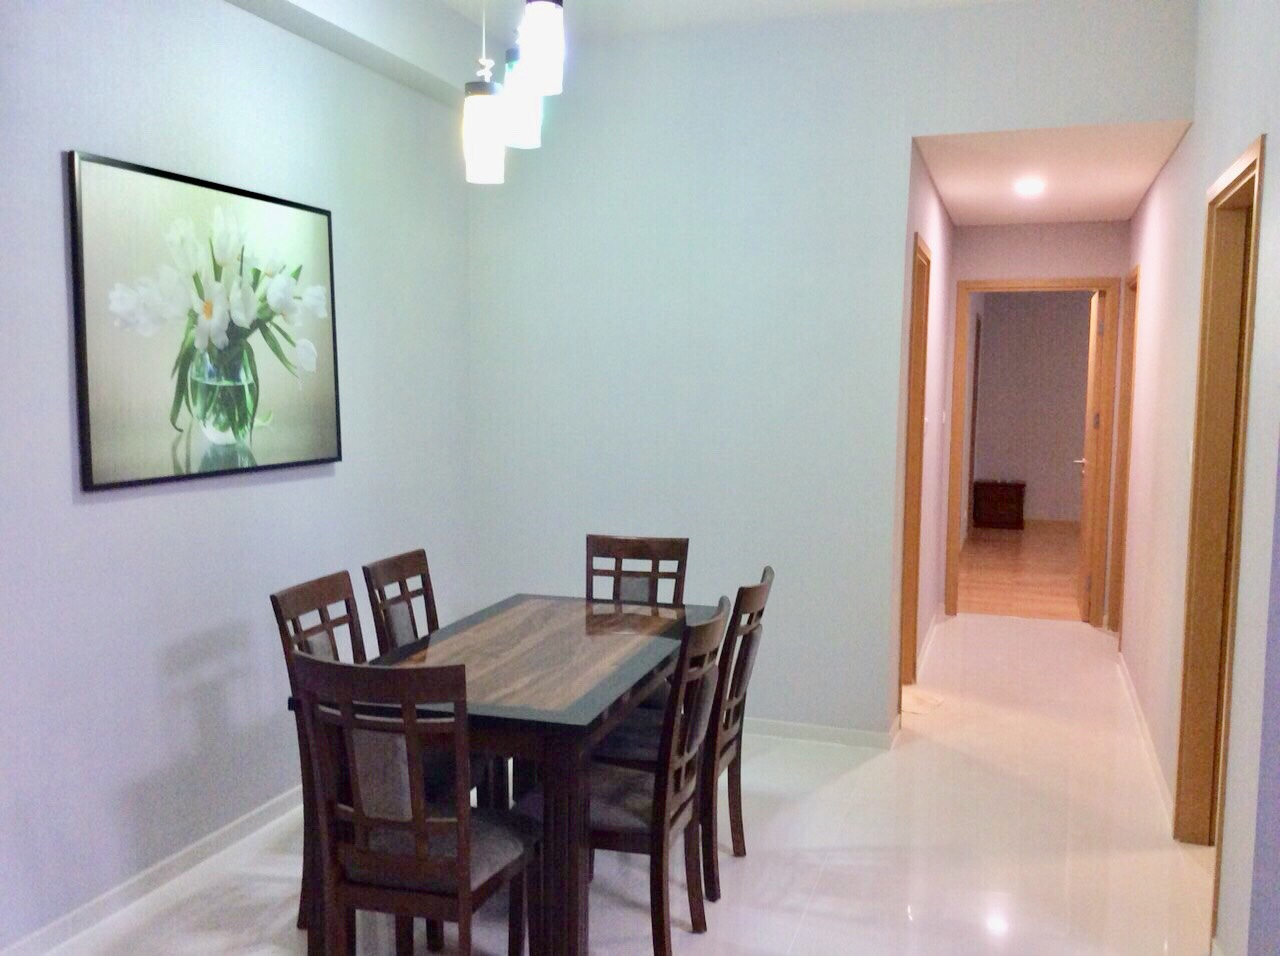 Apartment for rent D203477 (4)